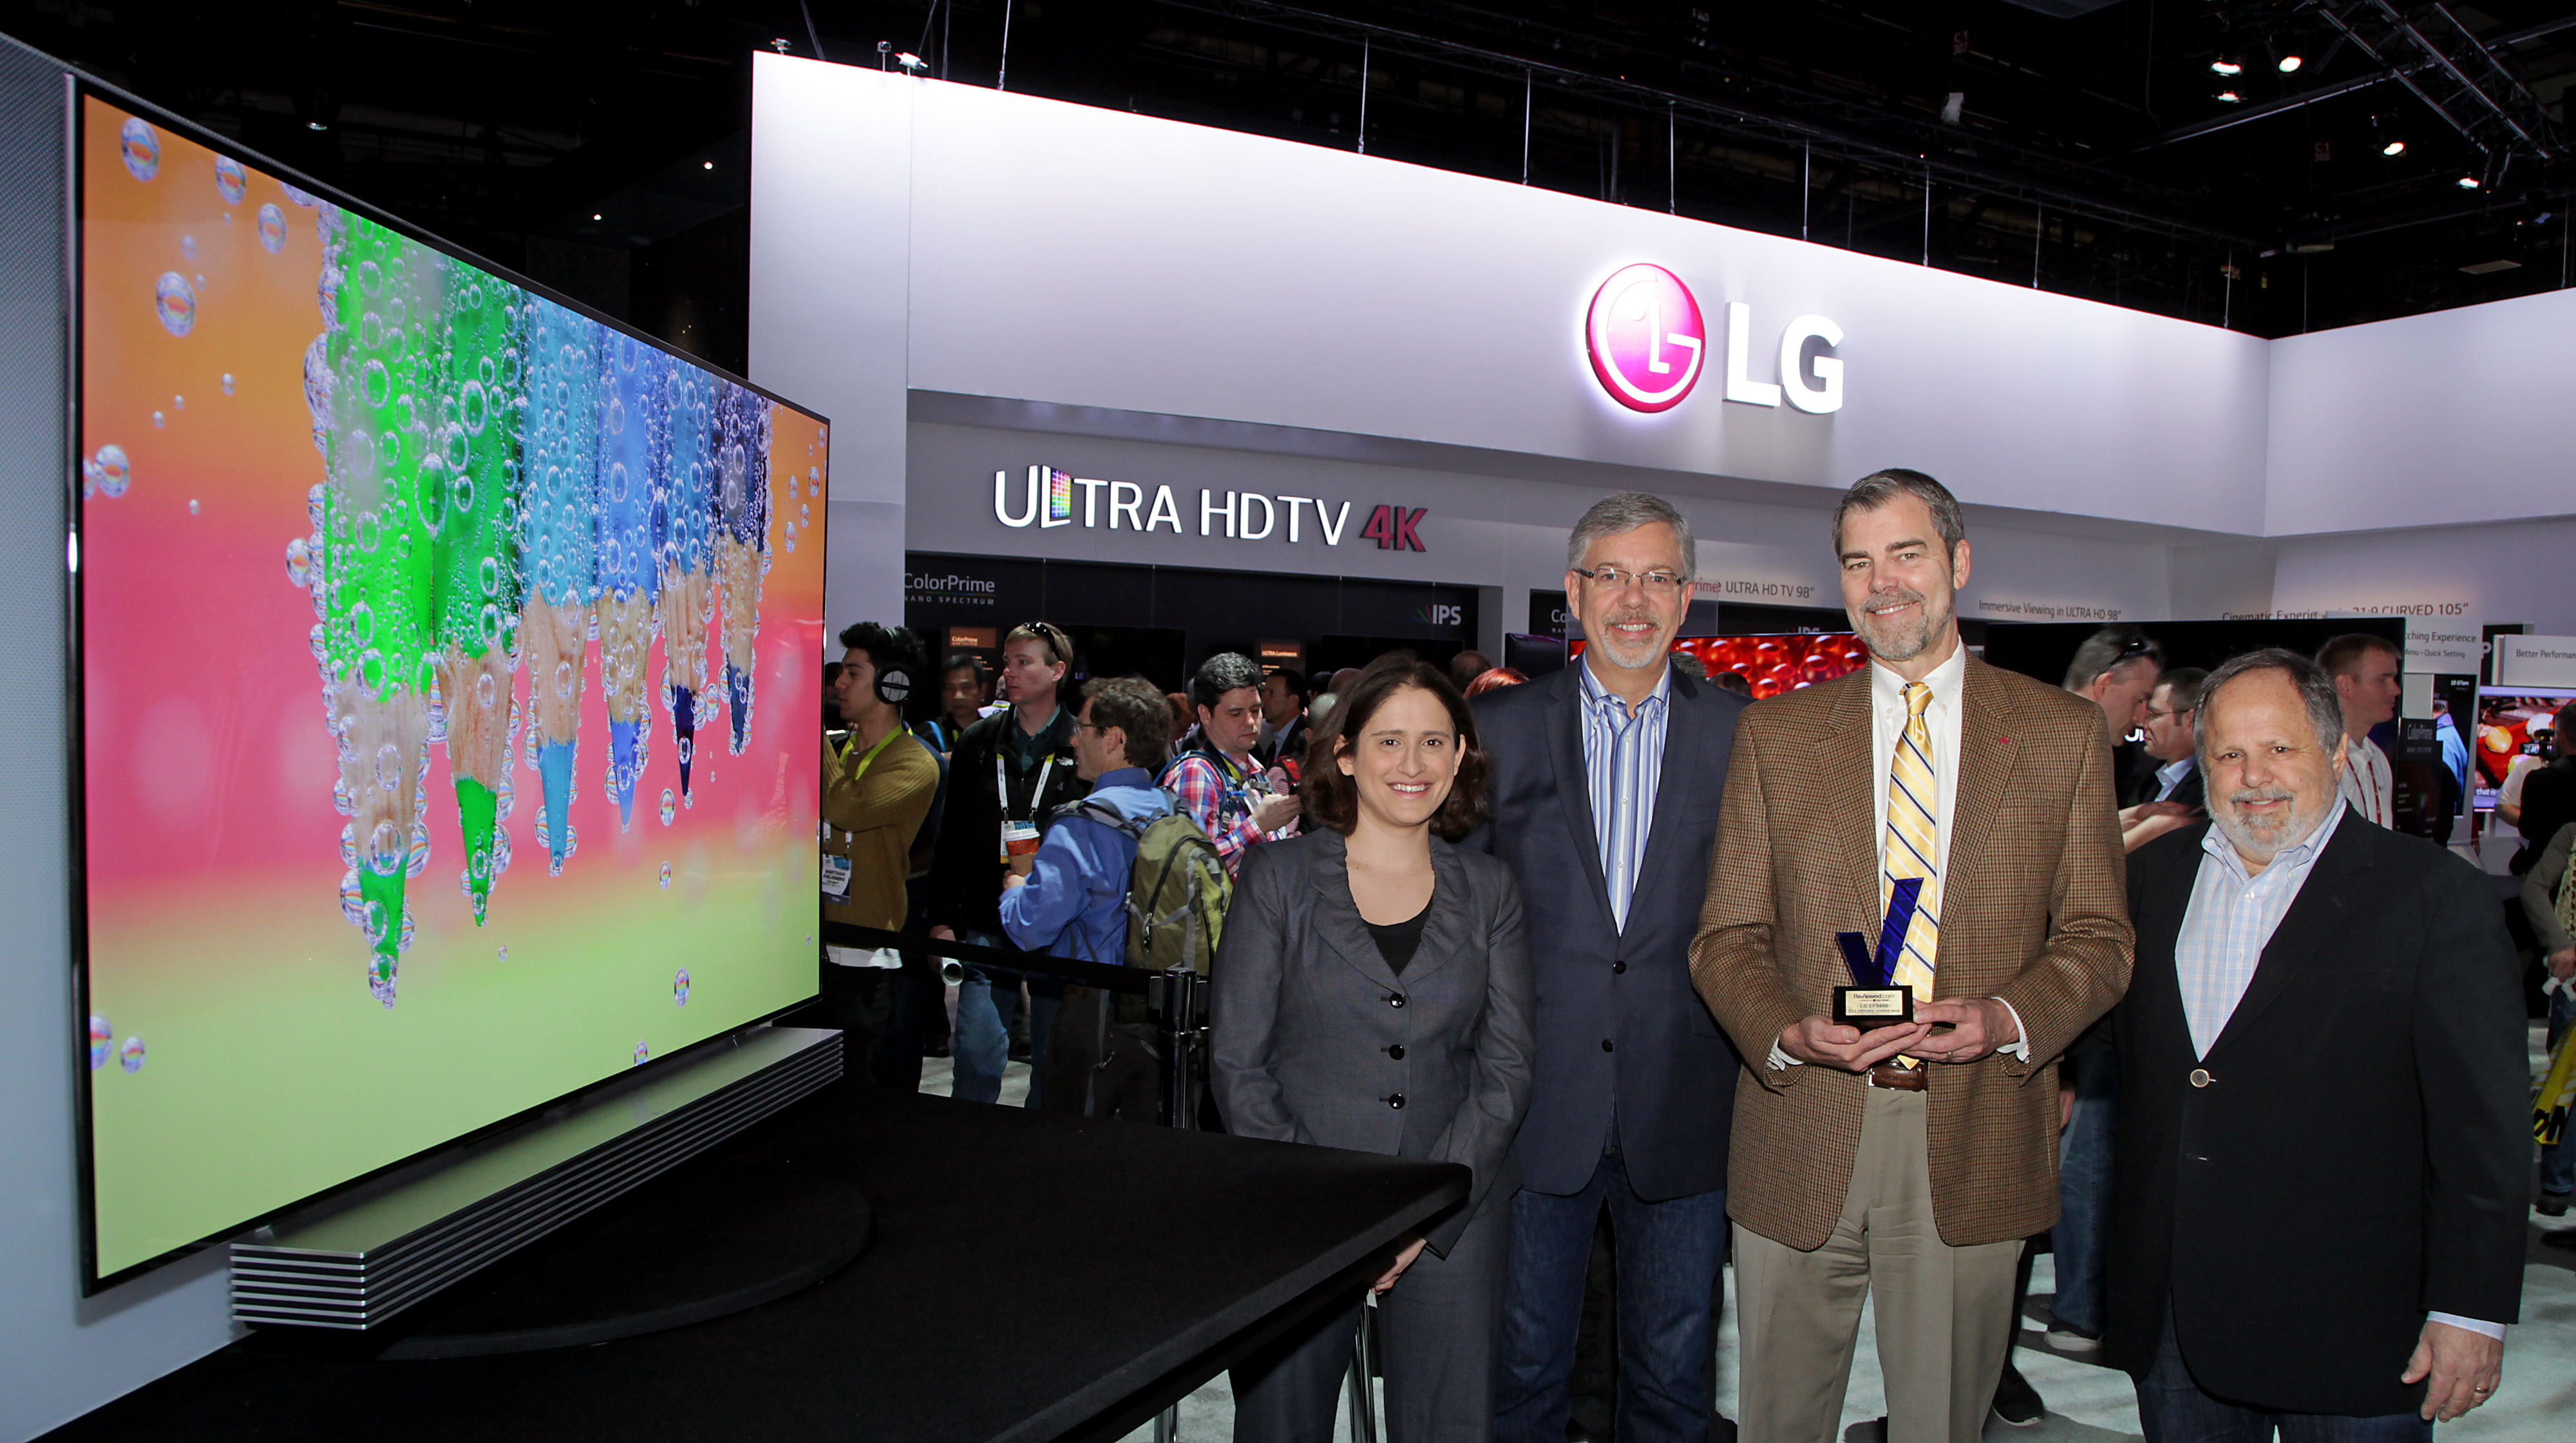 David VanderWaal, director of home appliance brand marketing, LG Electronics USA (third from left), holds one of the awards earned at CES 2015, and takes a group picture with colleagues